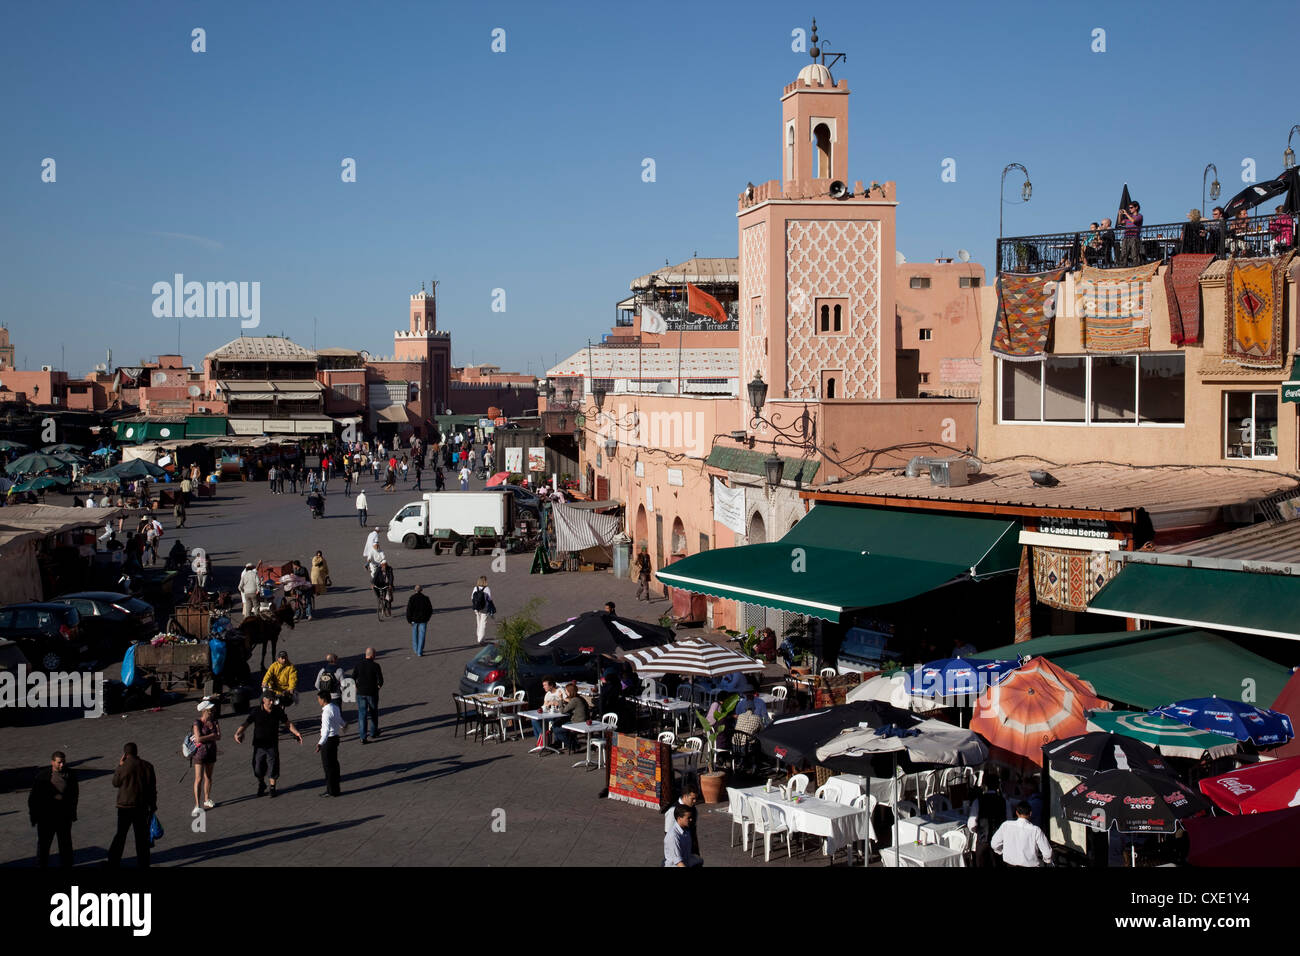 View over market, Place Jemaa El Fna, Marrakesh, Morocco, North Africa, Africa Stock Photo